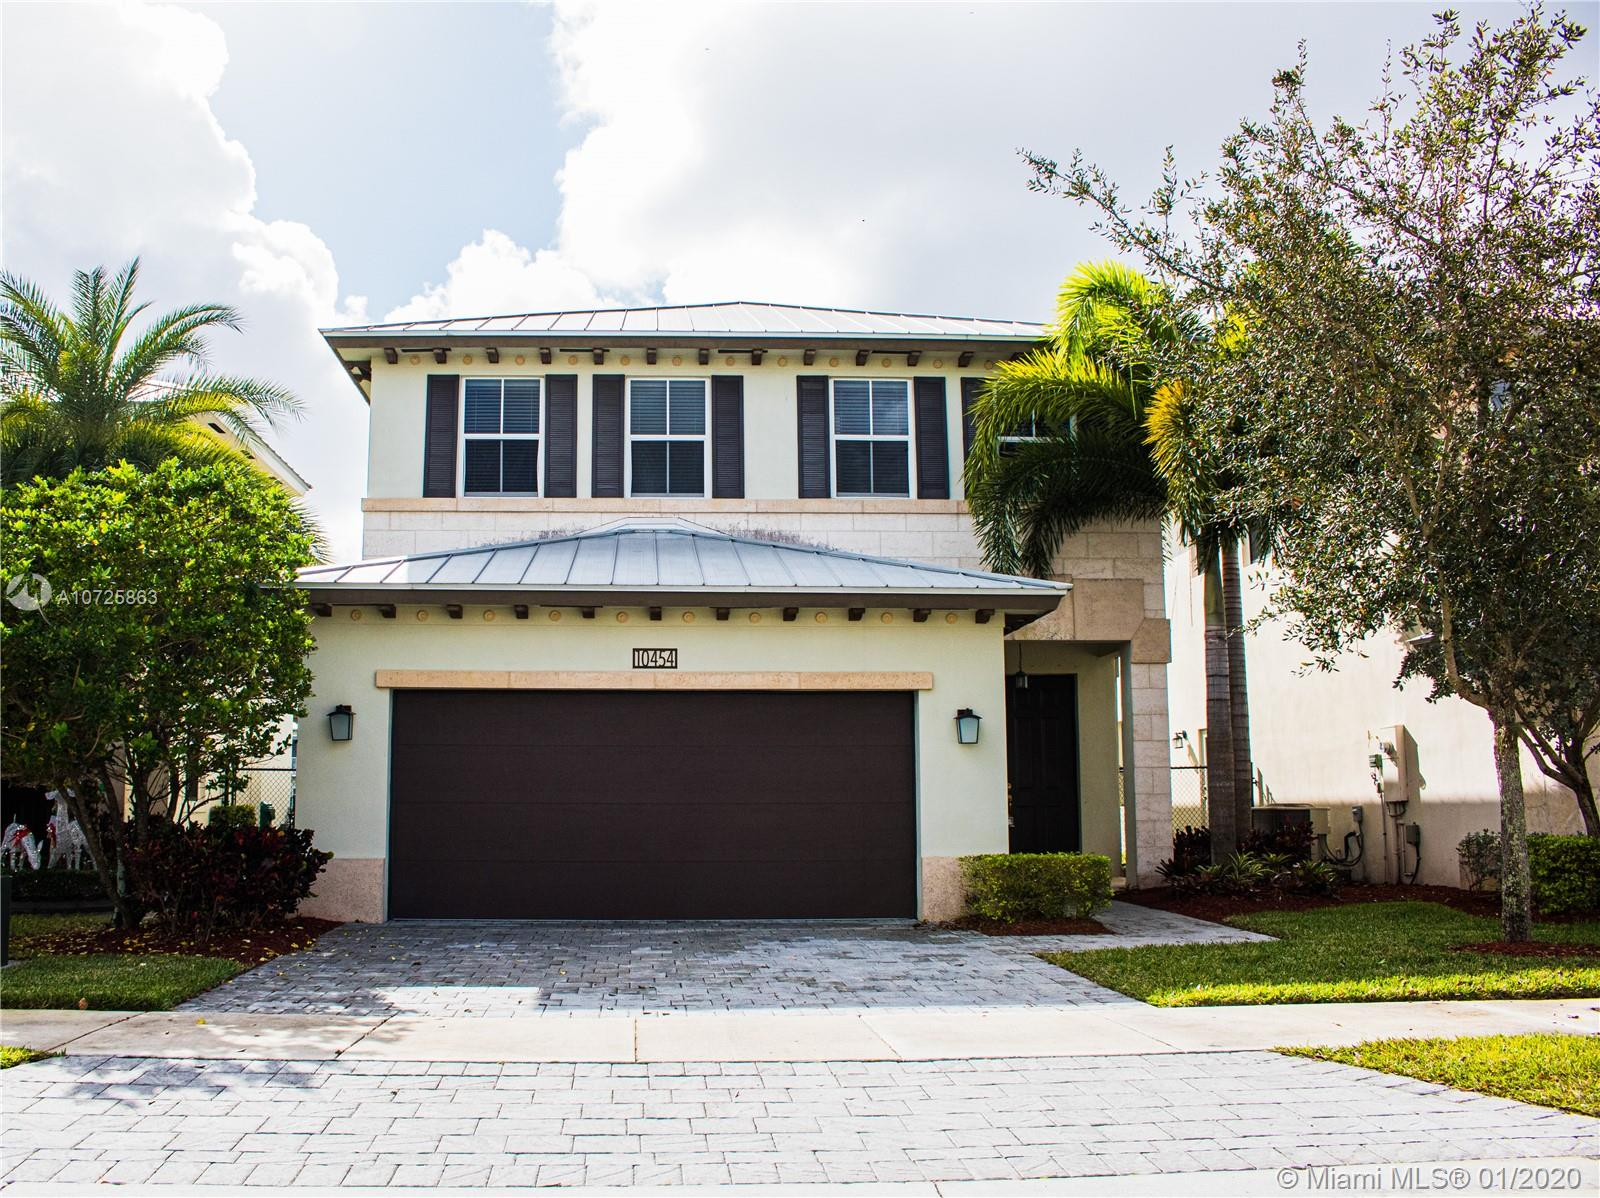 10454 NW 70 LN, Doral in Miami-dade County County, FL 33178 Home for Sale